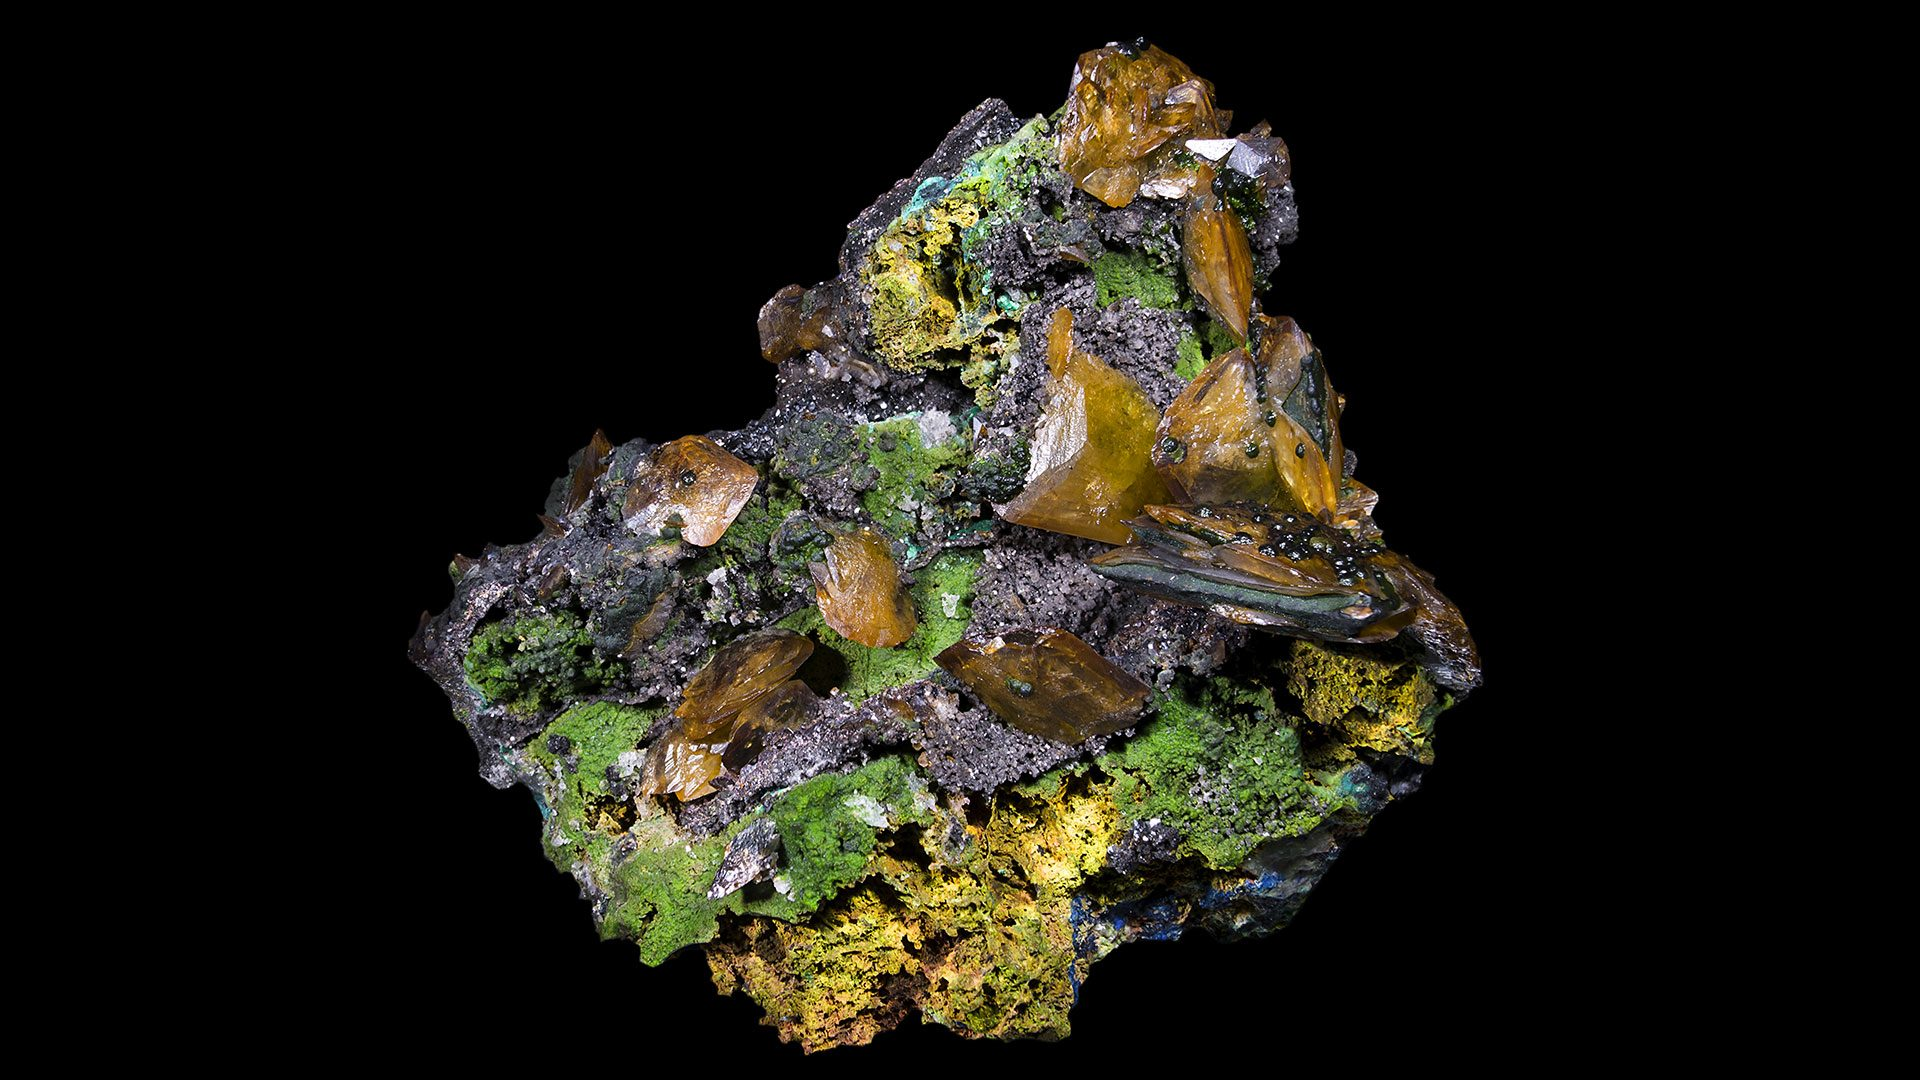 Wulfenite Properties and Meaning - Original Photograph by Didier Descouens